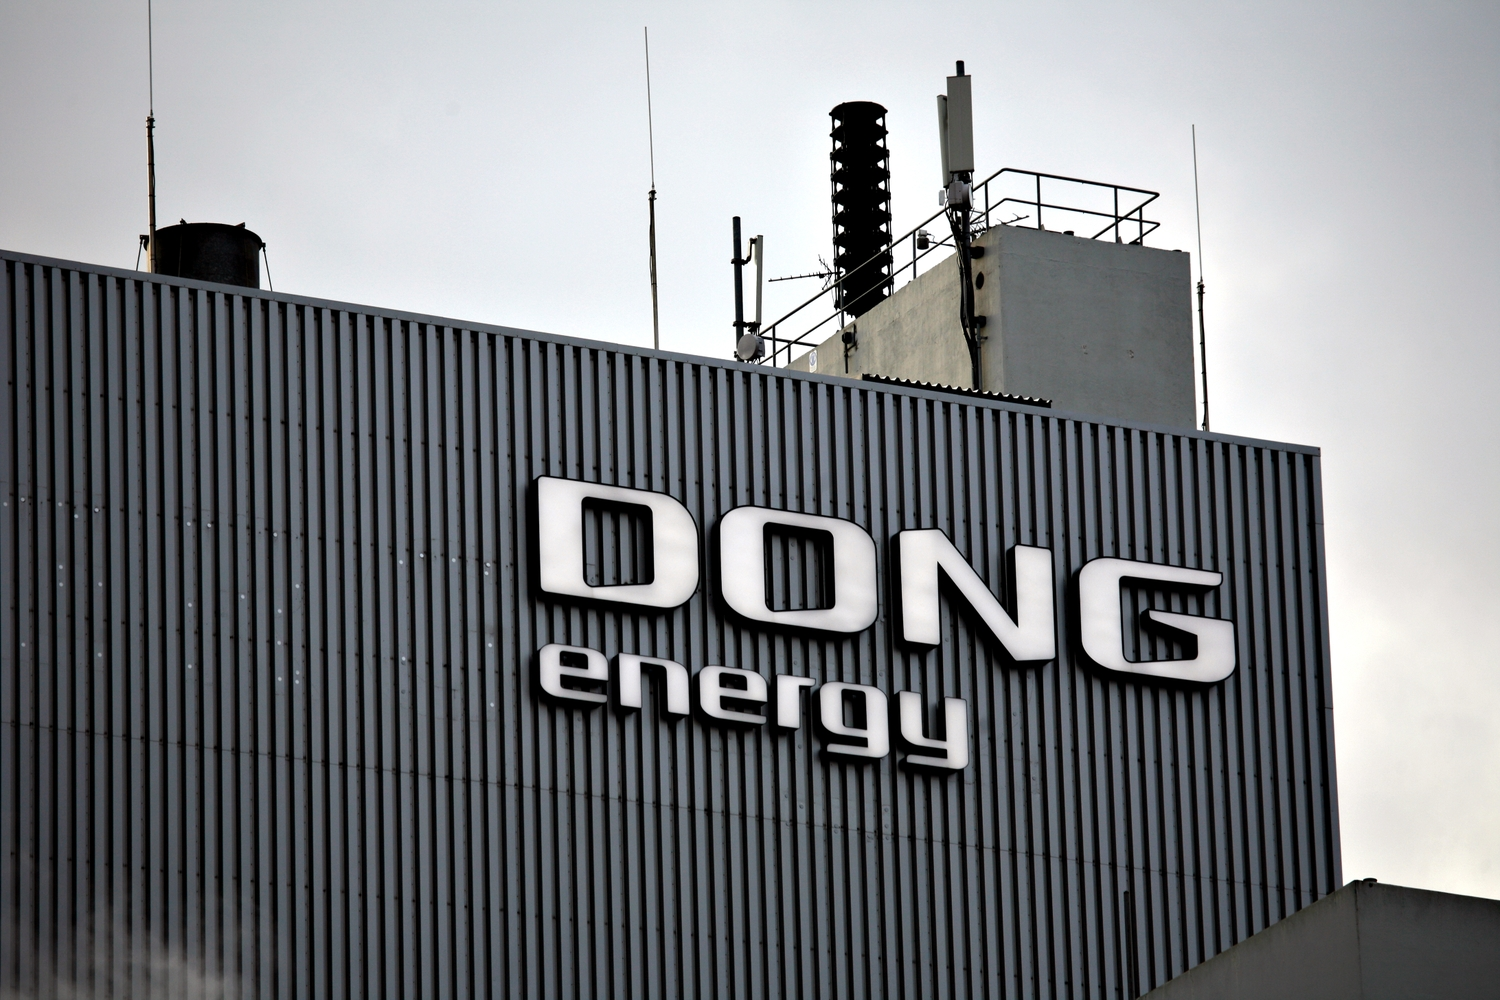 Dong energy ipo advisors